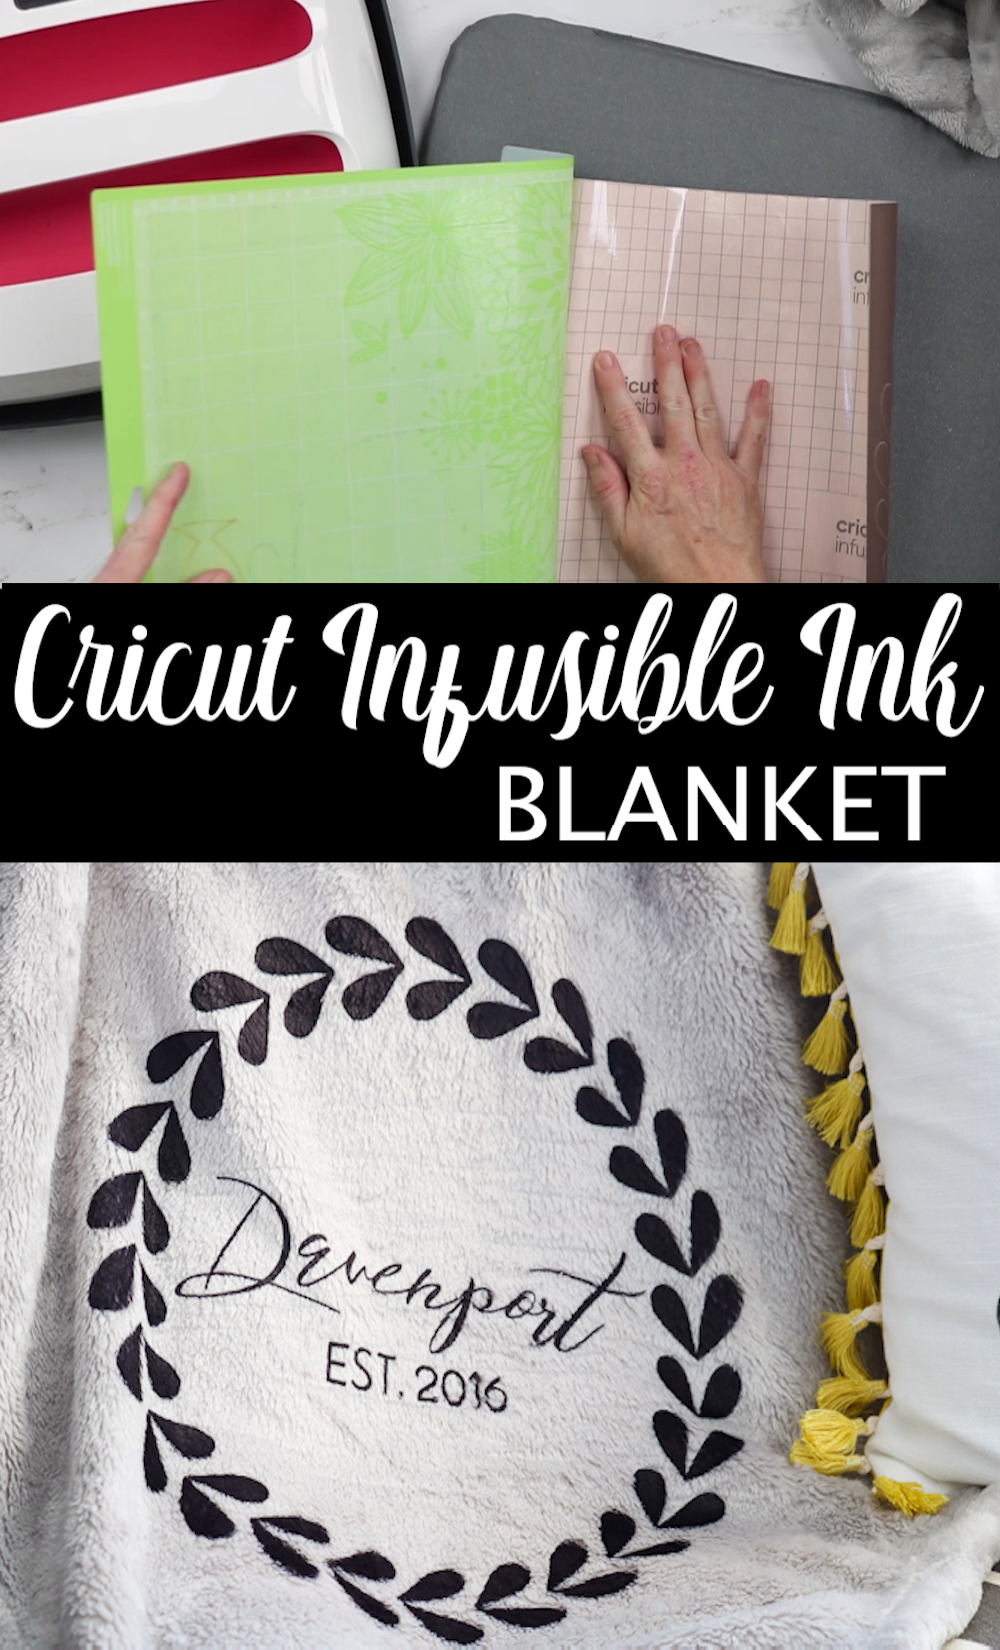 Did you know that Cricut Infusible Ink will work on a 100% polyester blanket? Customize this project for wedding showers and other gifts! It is the perfect way to give a personalized gift idea that anyone will love! #cricut #cricutcreated #infusibleink #cricutinfusibleink #cricutexplore #cricutmaker #blanket #weddings #weddinggift #giftidea #custom #personalized